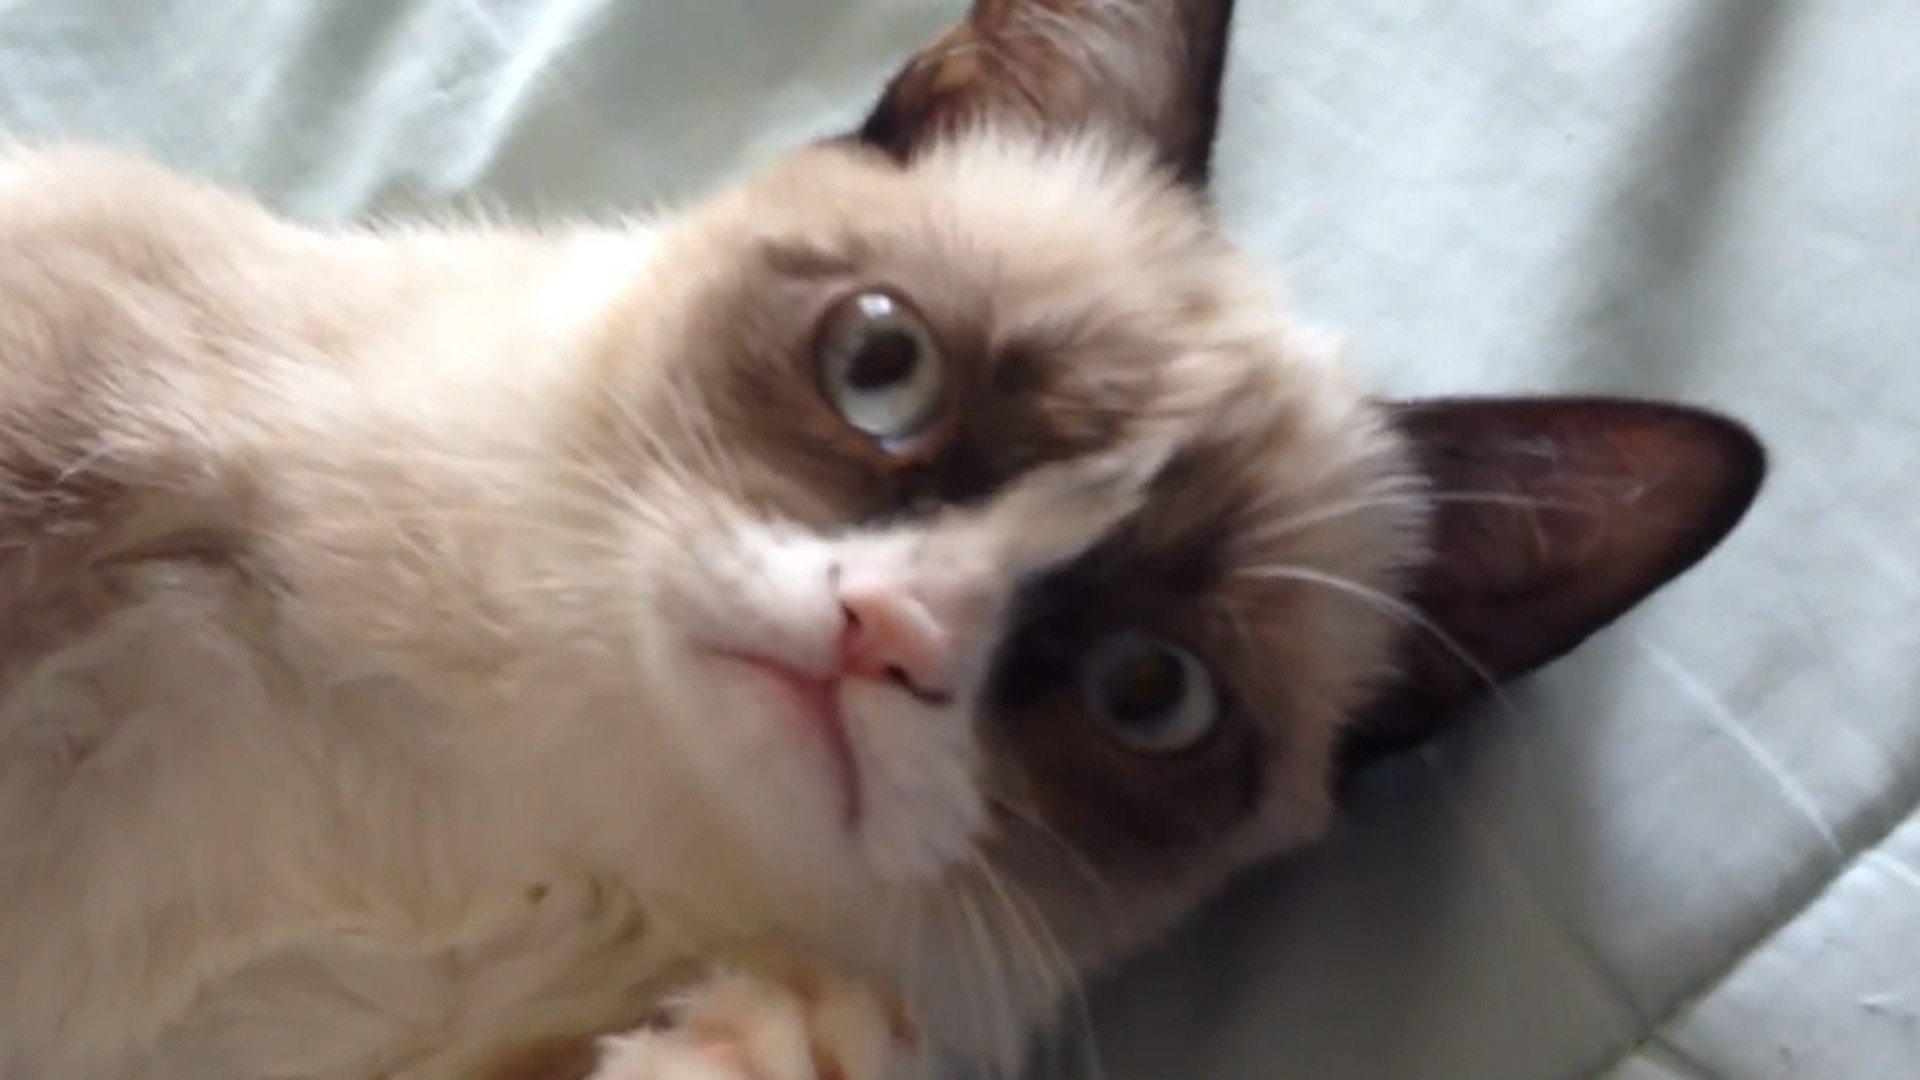 Scientists Explain Why Watching Internet Cat Videos Is Good for You